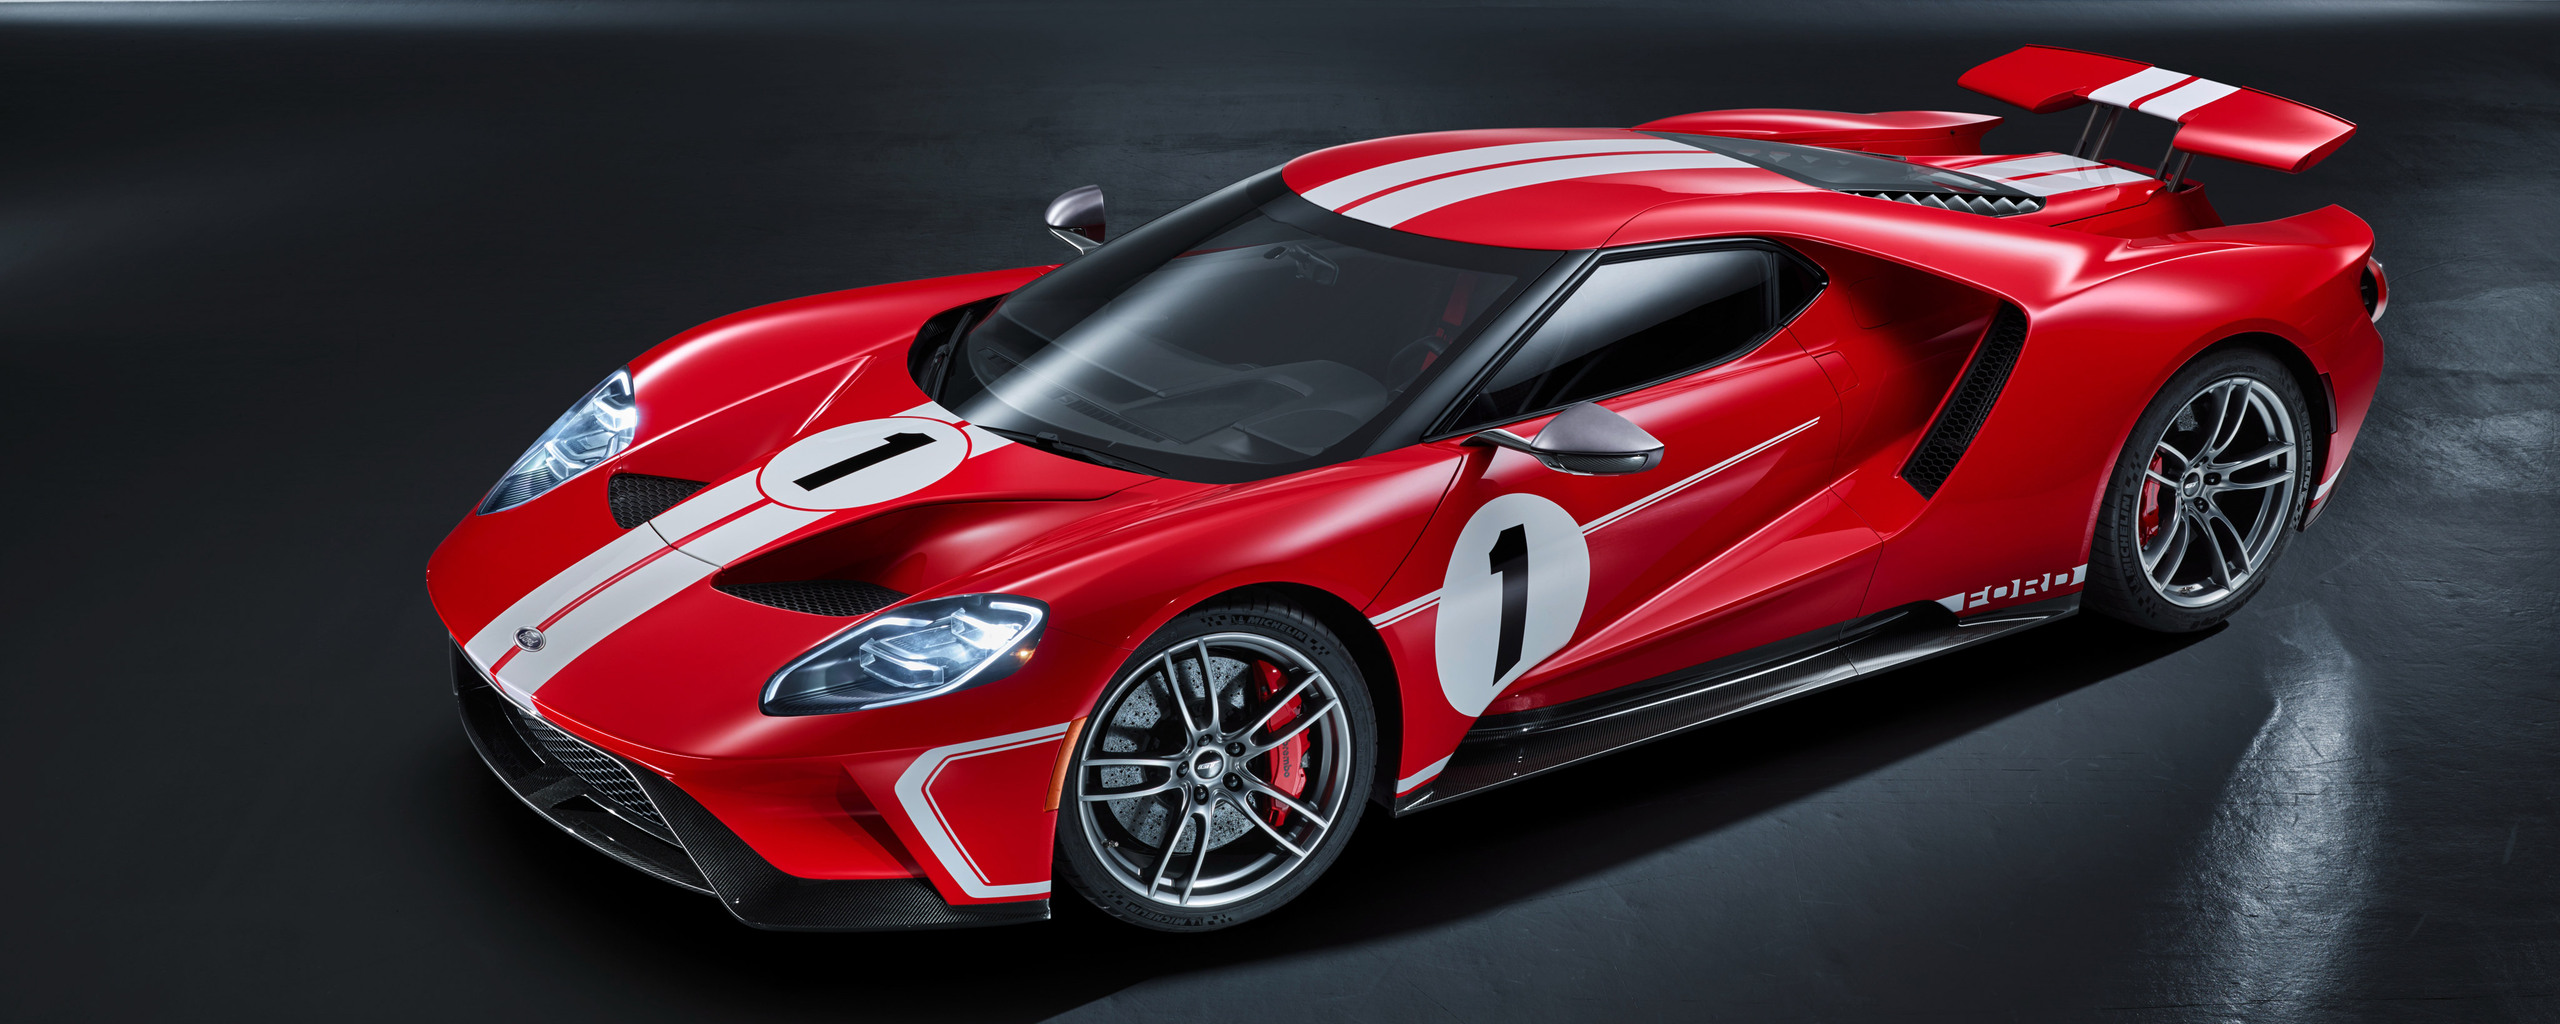 2018-ford-gt-67-heritage-edition-e6.jpg